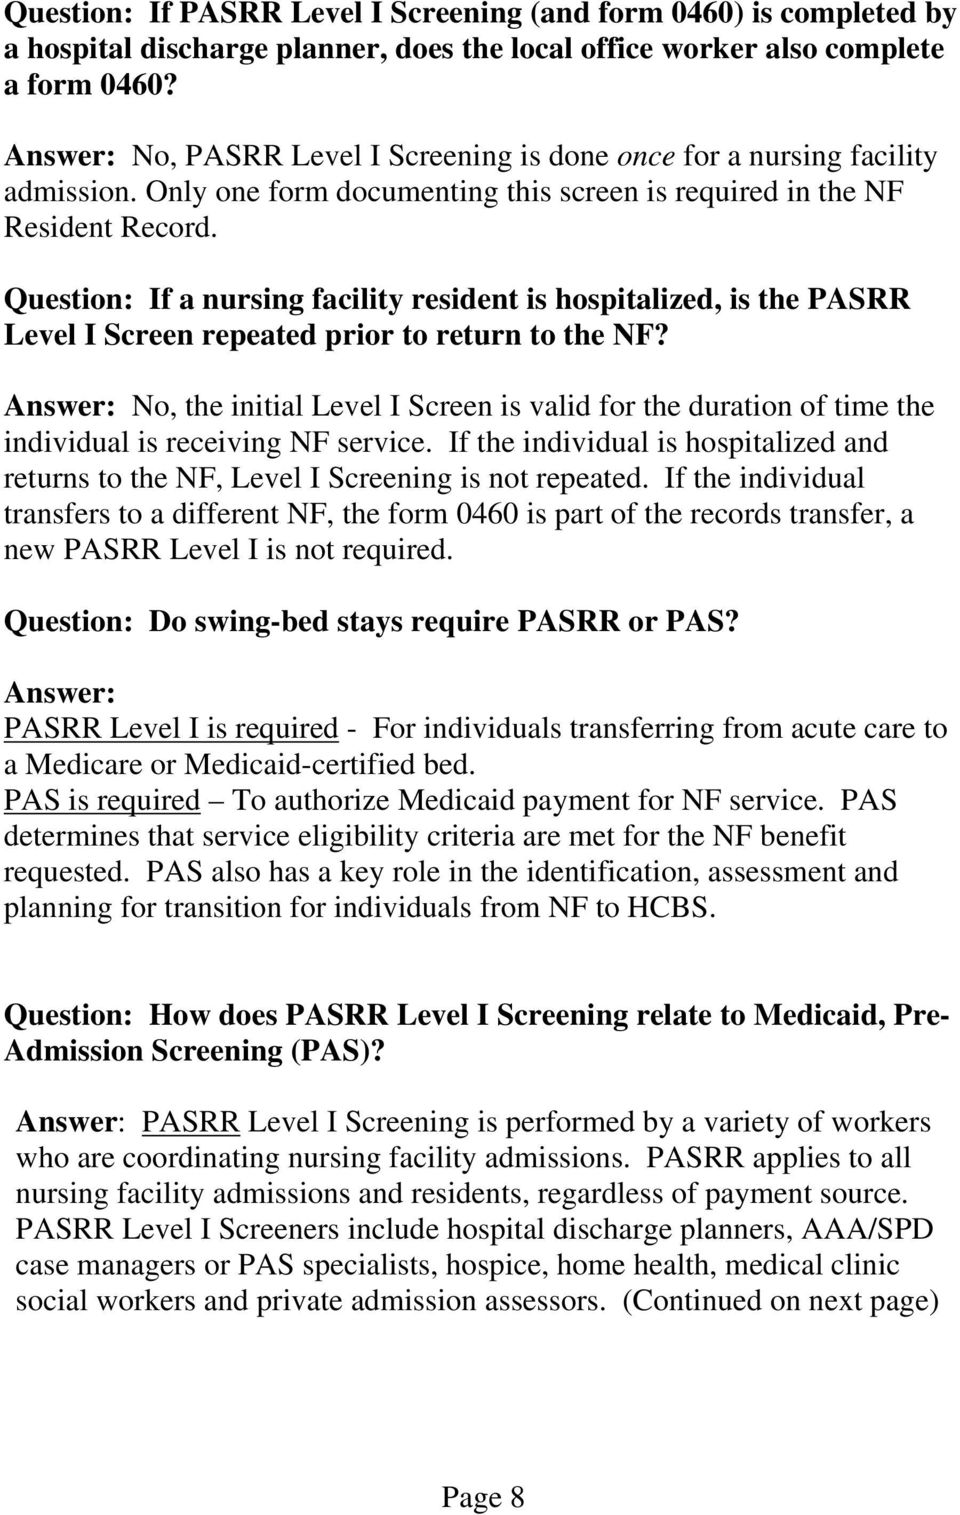 Question: If a nursing facility resident is hospitalized, is the PASRR Level I Screen repeated prior to return to the NF?